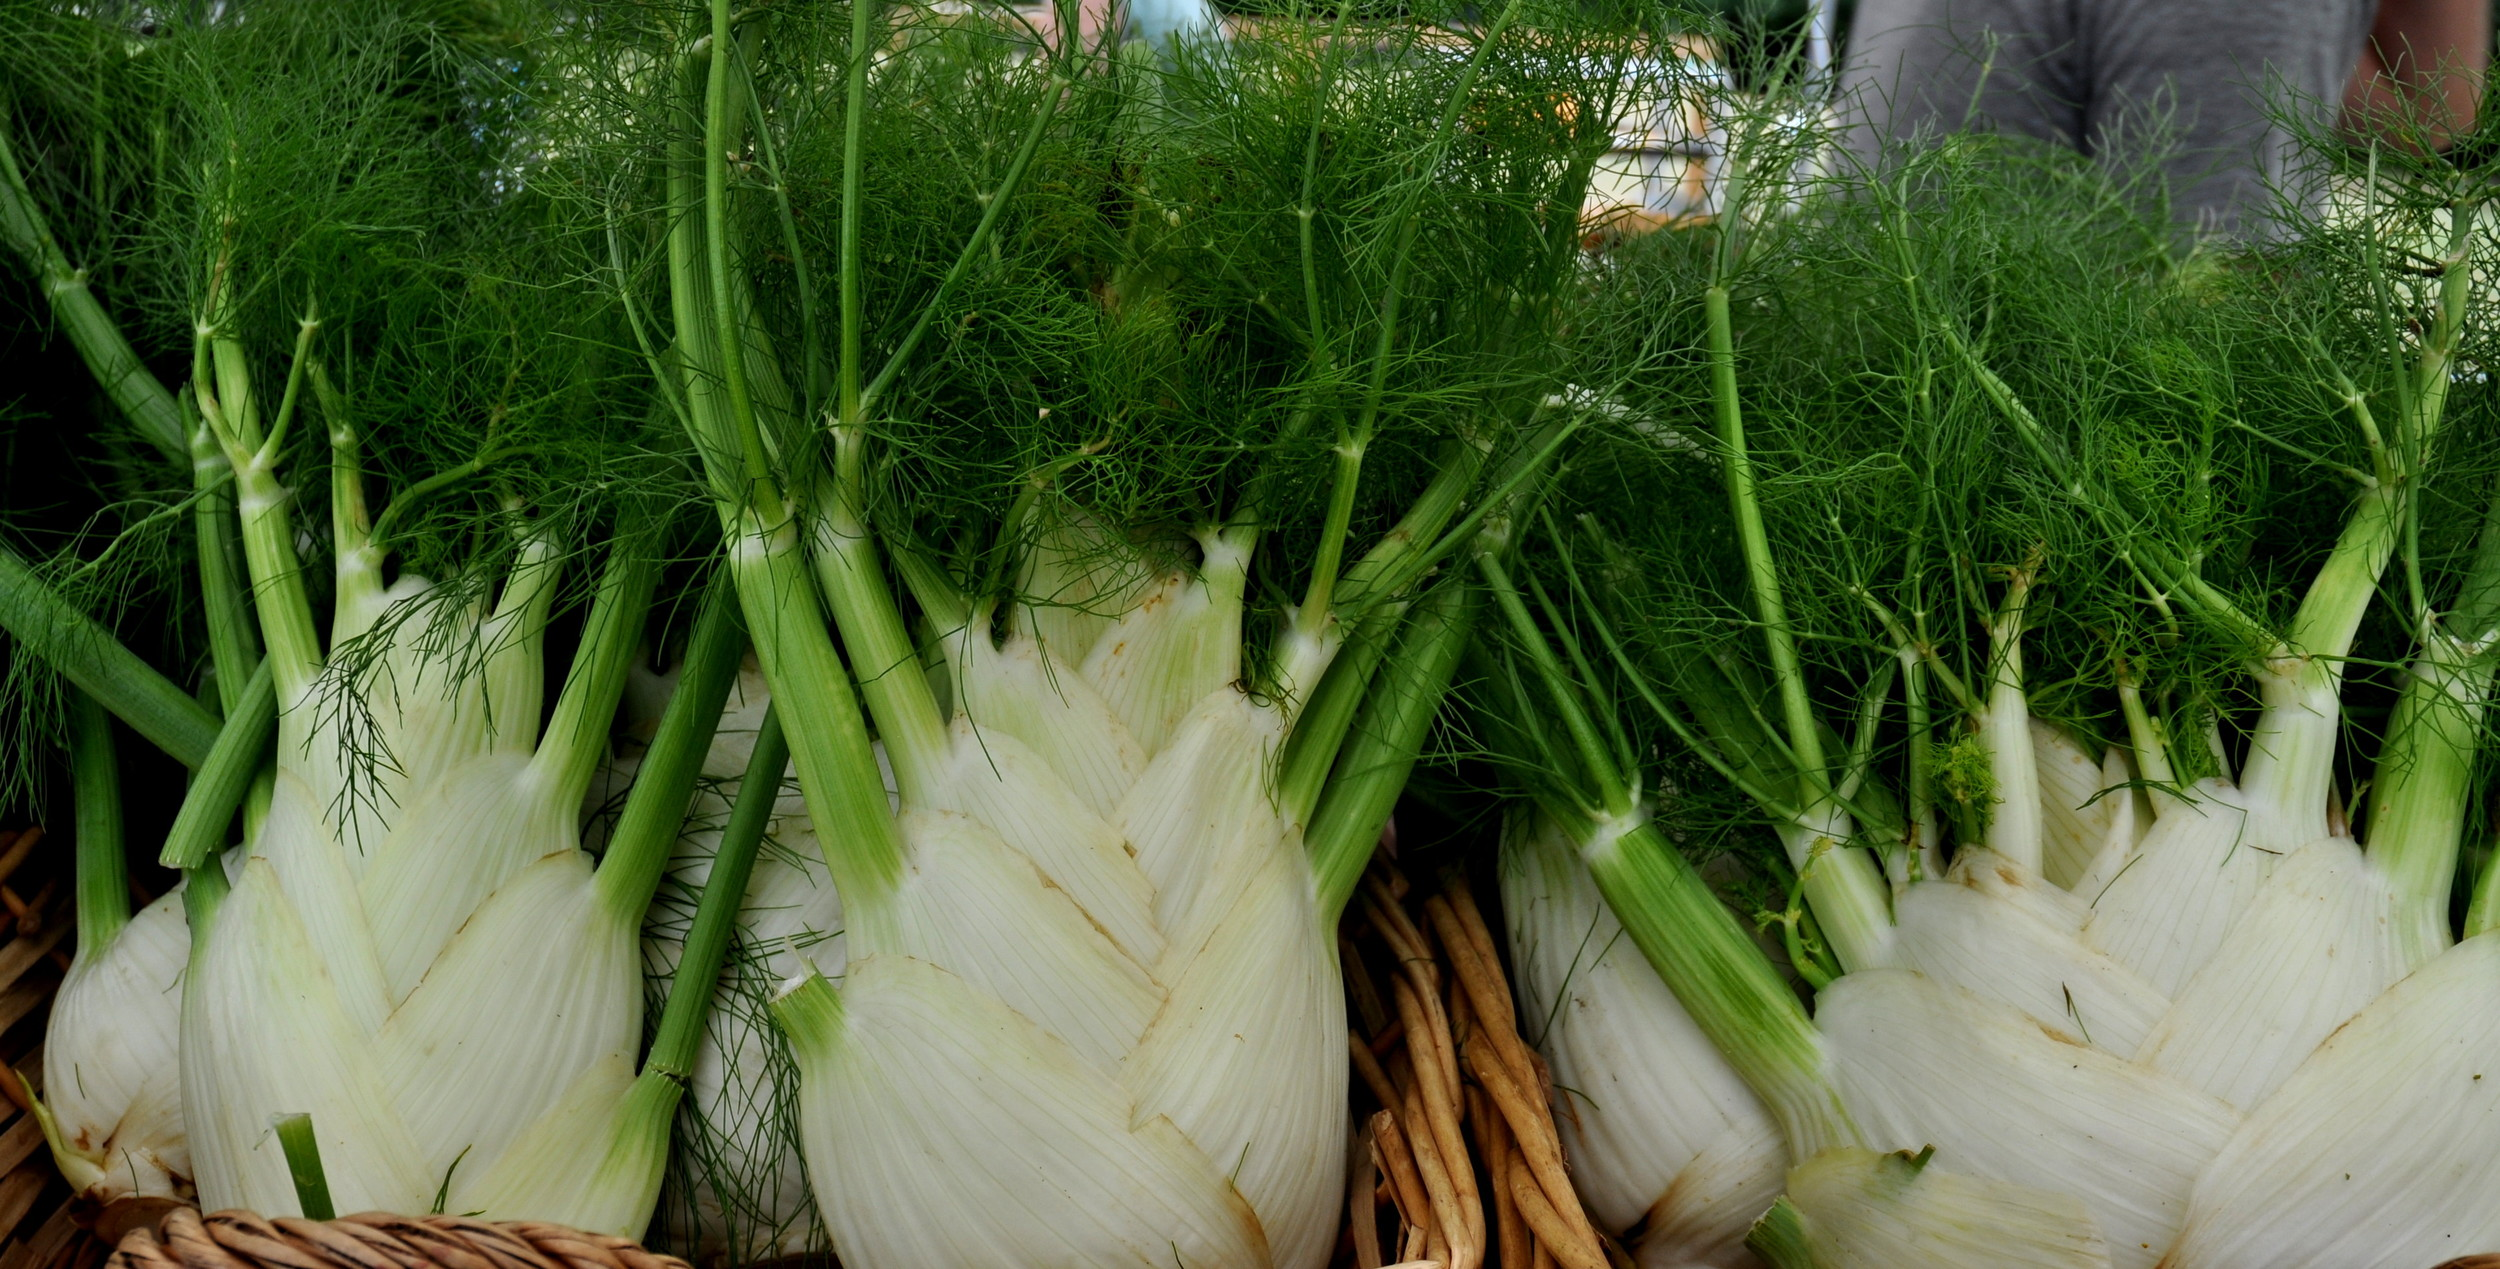 Fennel bulb from Alm Hill Gardens. Photo copyright 2013 by Zachary D. Lyons.